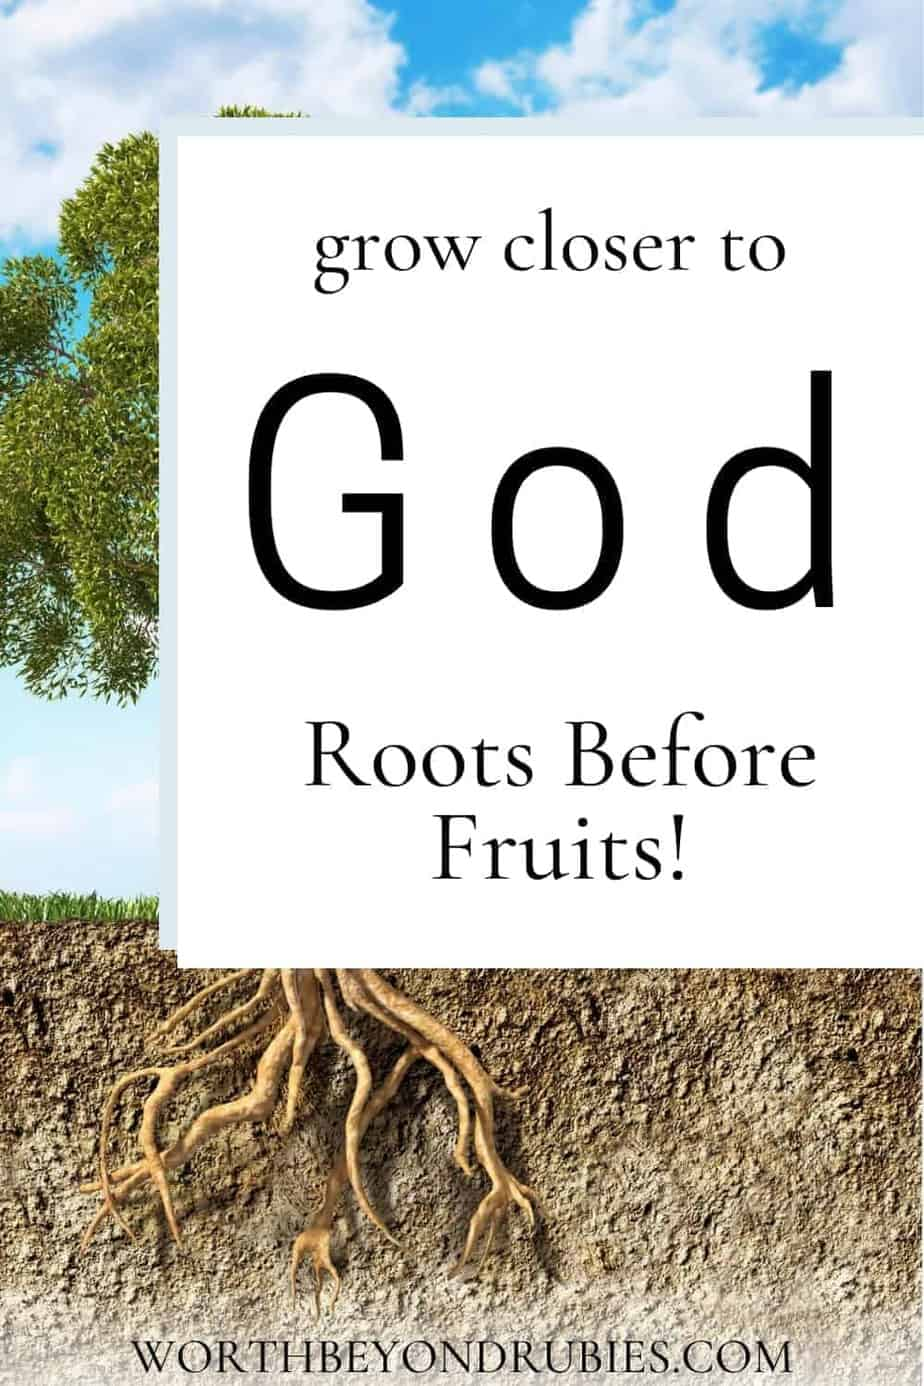 An image of a tree with all its leaves and a view into the ground underneath it showing the roots with text that says How to Get Closer to God – Roots Before Fruits